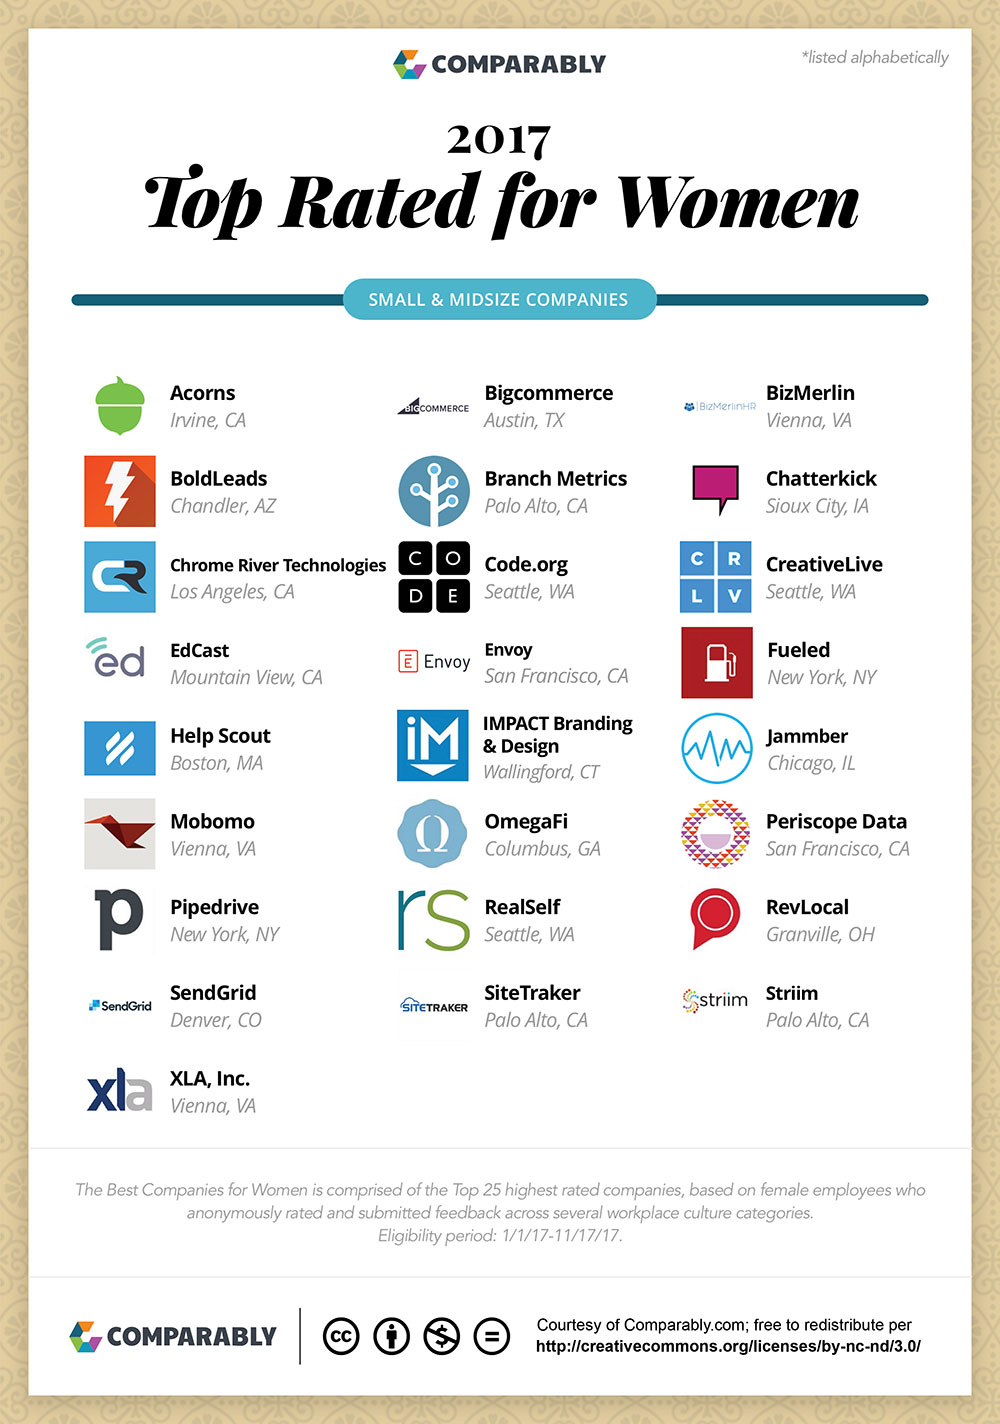 comparably-best-company-women-infographic.jpg